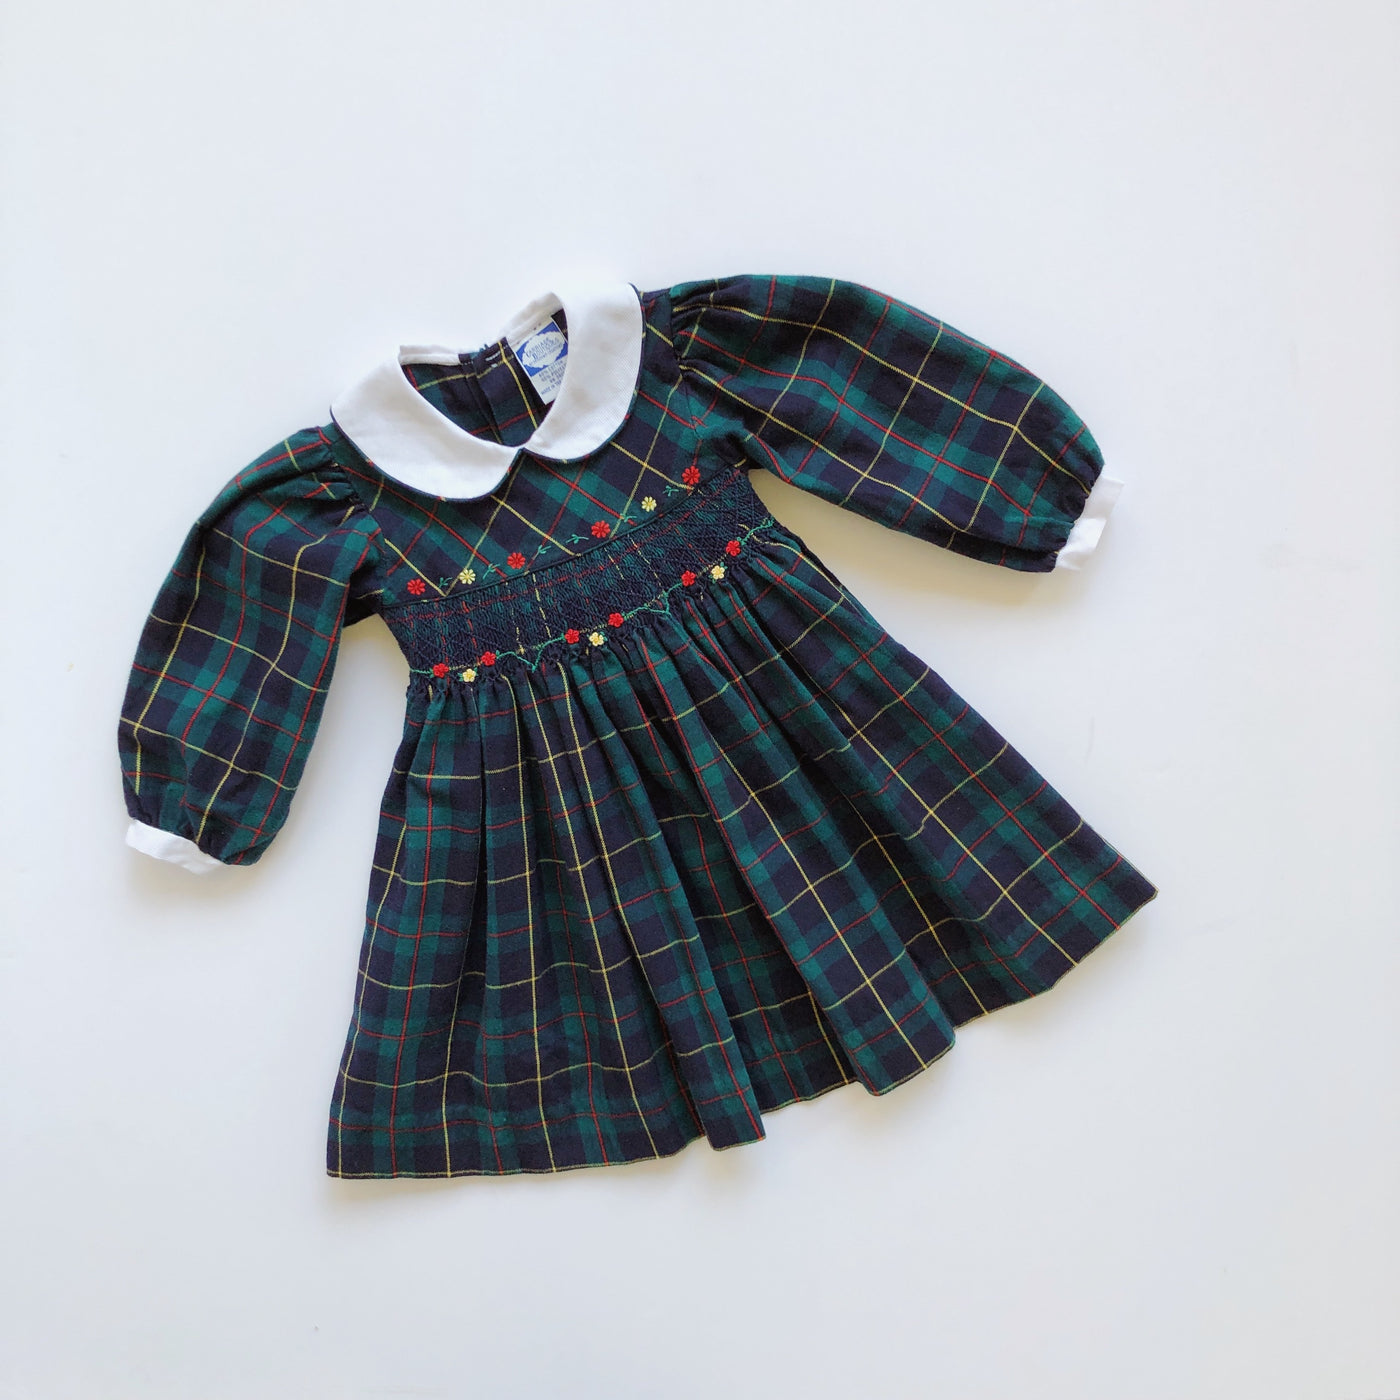 Vintage Carriage Boutique Plaid Smocked Dress / Size 3T